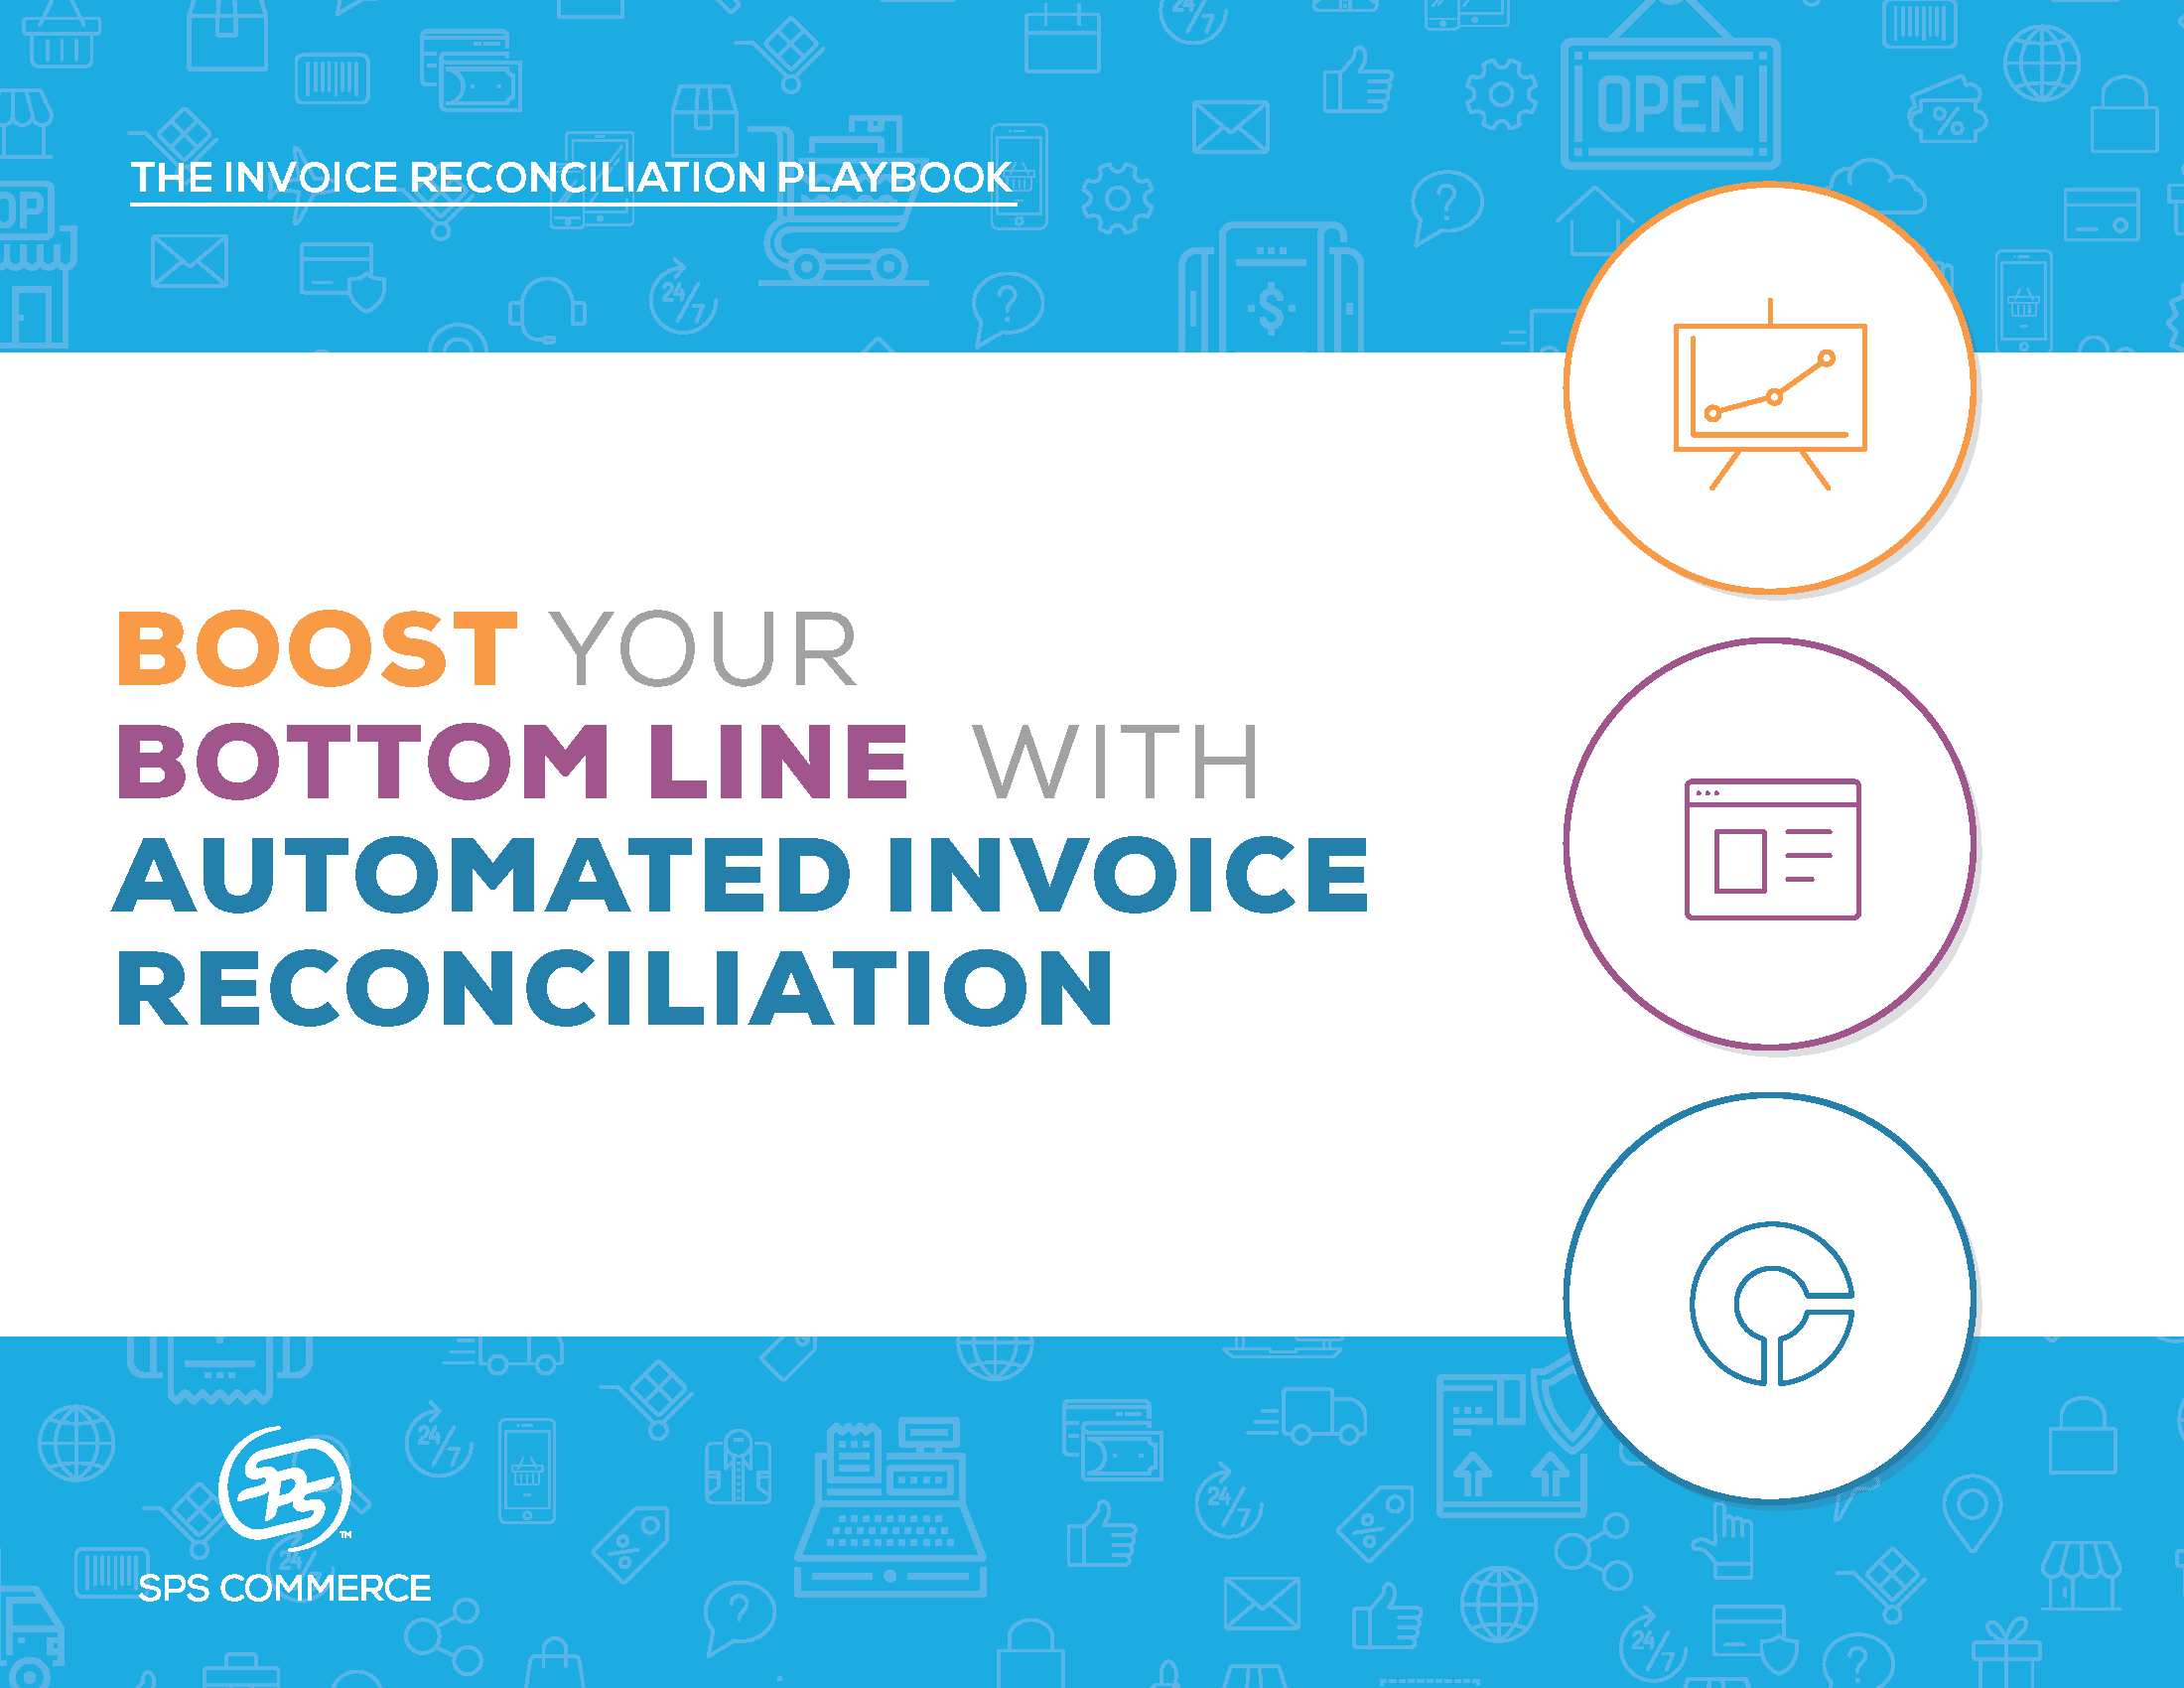 The Invoice Reconciliation Playbook